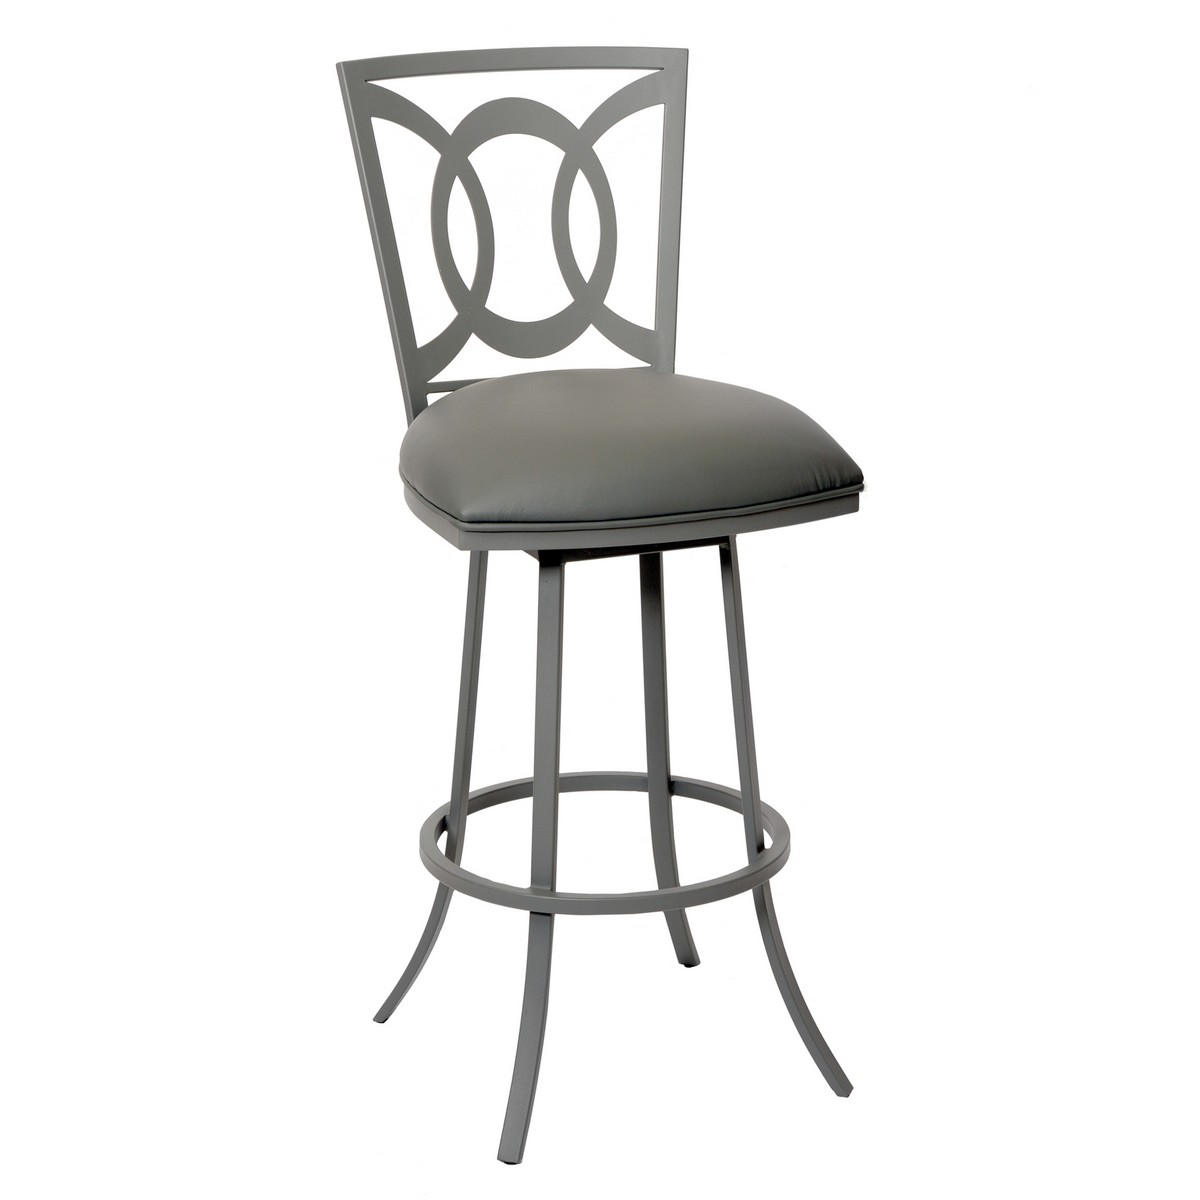 Armen Living Drake 30-inch Transitional Barstool In Gray and Gray Metal